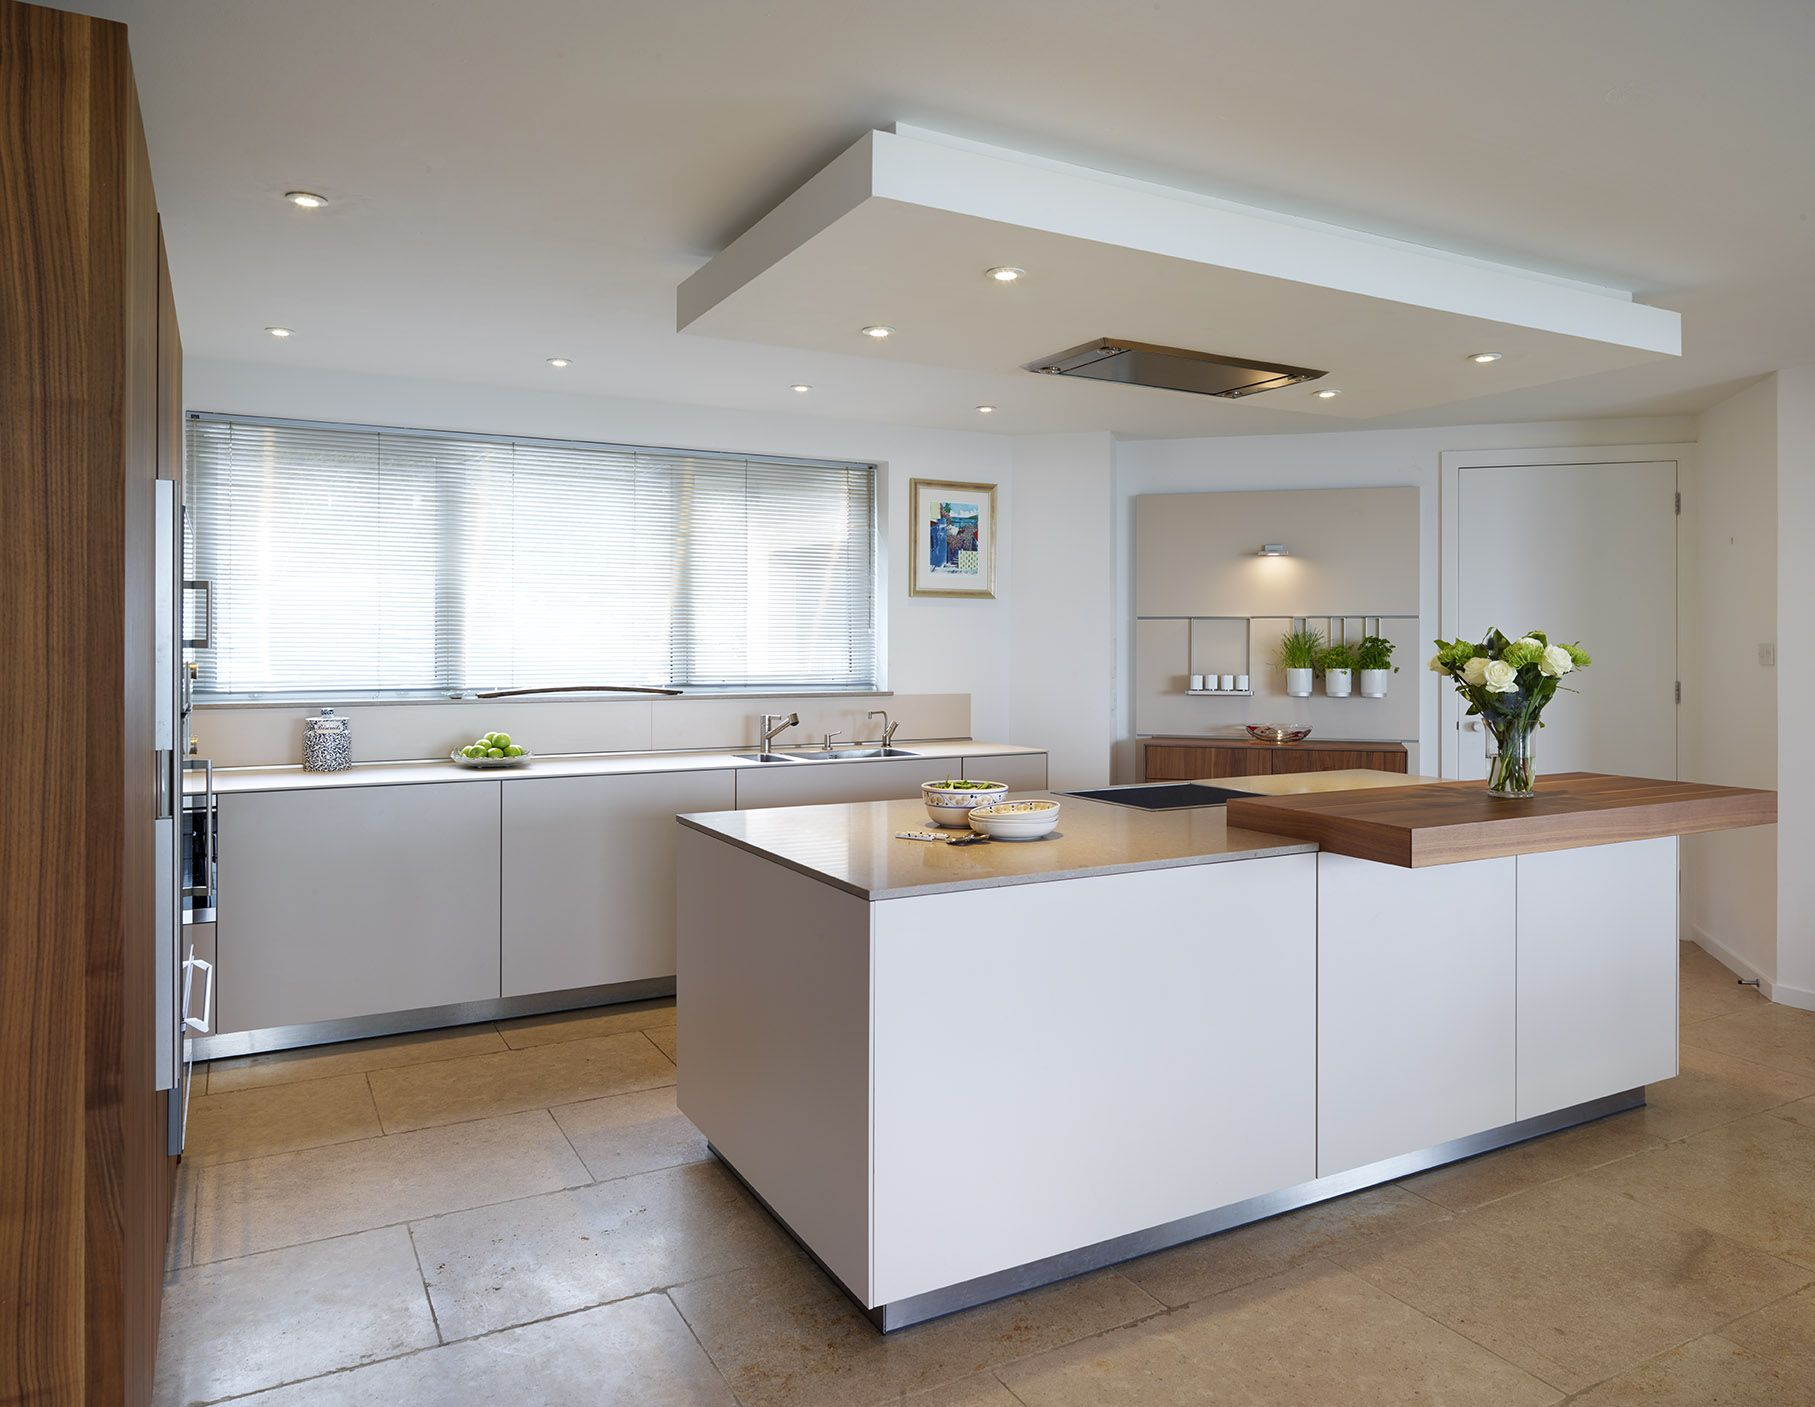 Kitchen Island Extractor the drop ceiling creates a flush fit extractor above the central